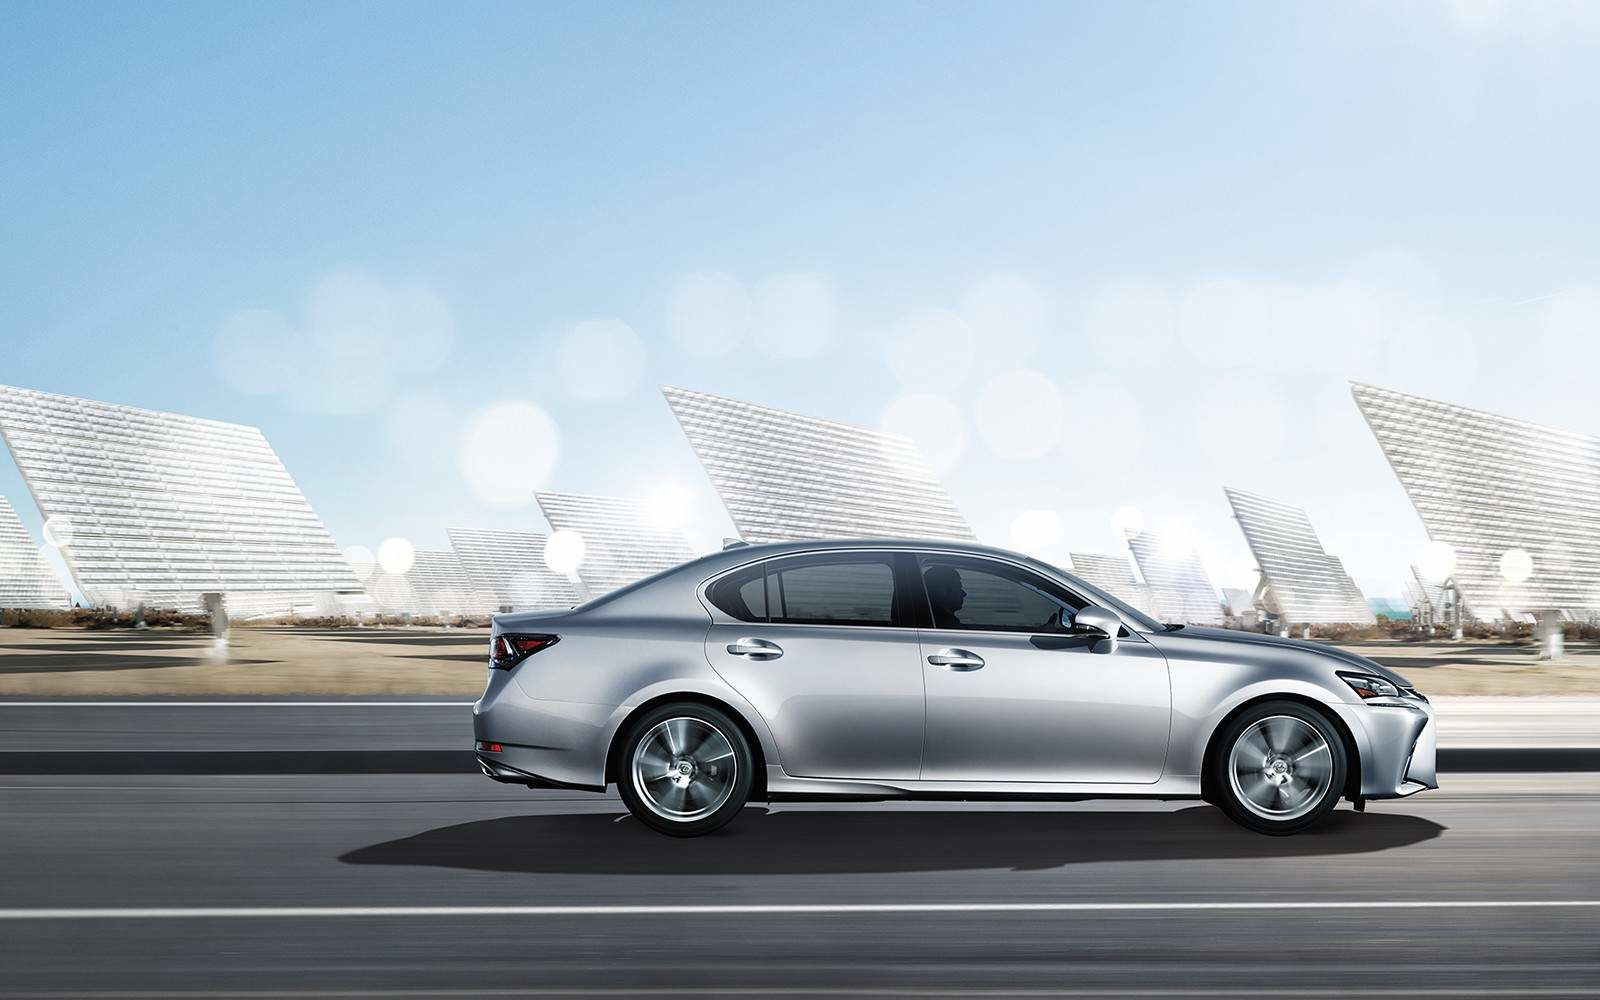 Lexus 2020 Gs 350 Awd Atomic Silver Profile L